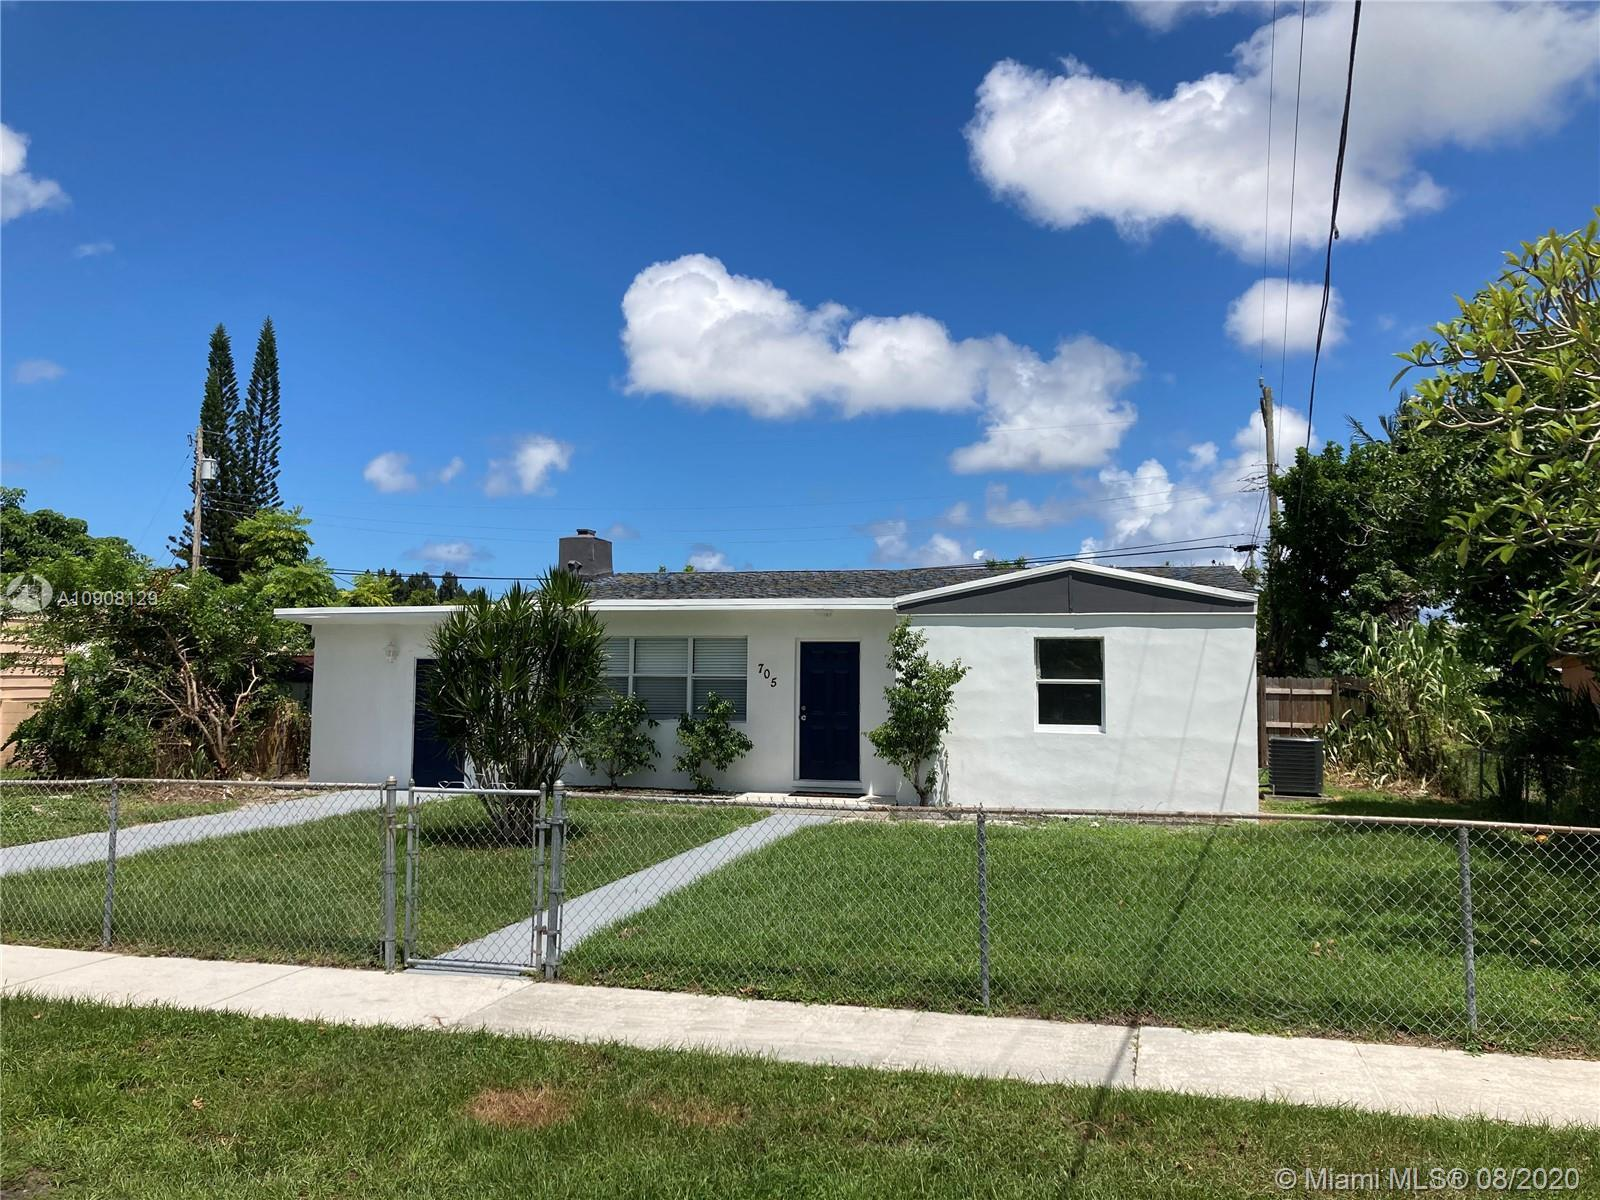 Completely Remodeled 4 Bed/2 Bath Home with a Pool, No HOA-  New Kitchen with Quartz tops - Stainles